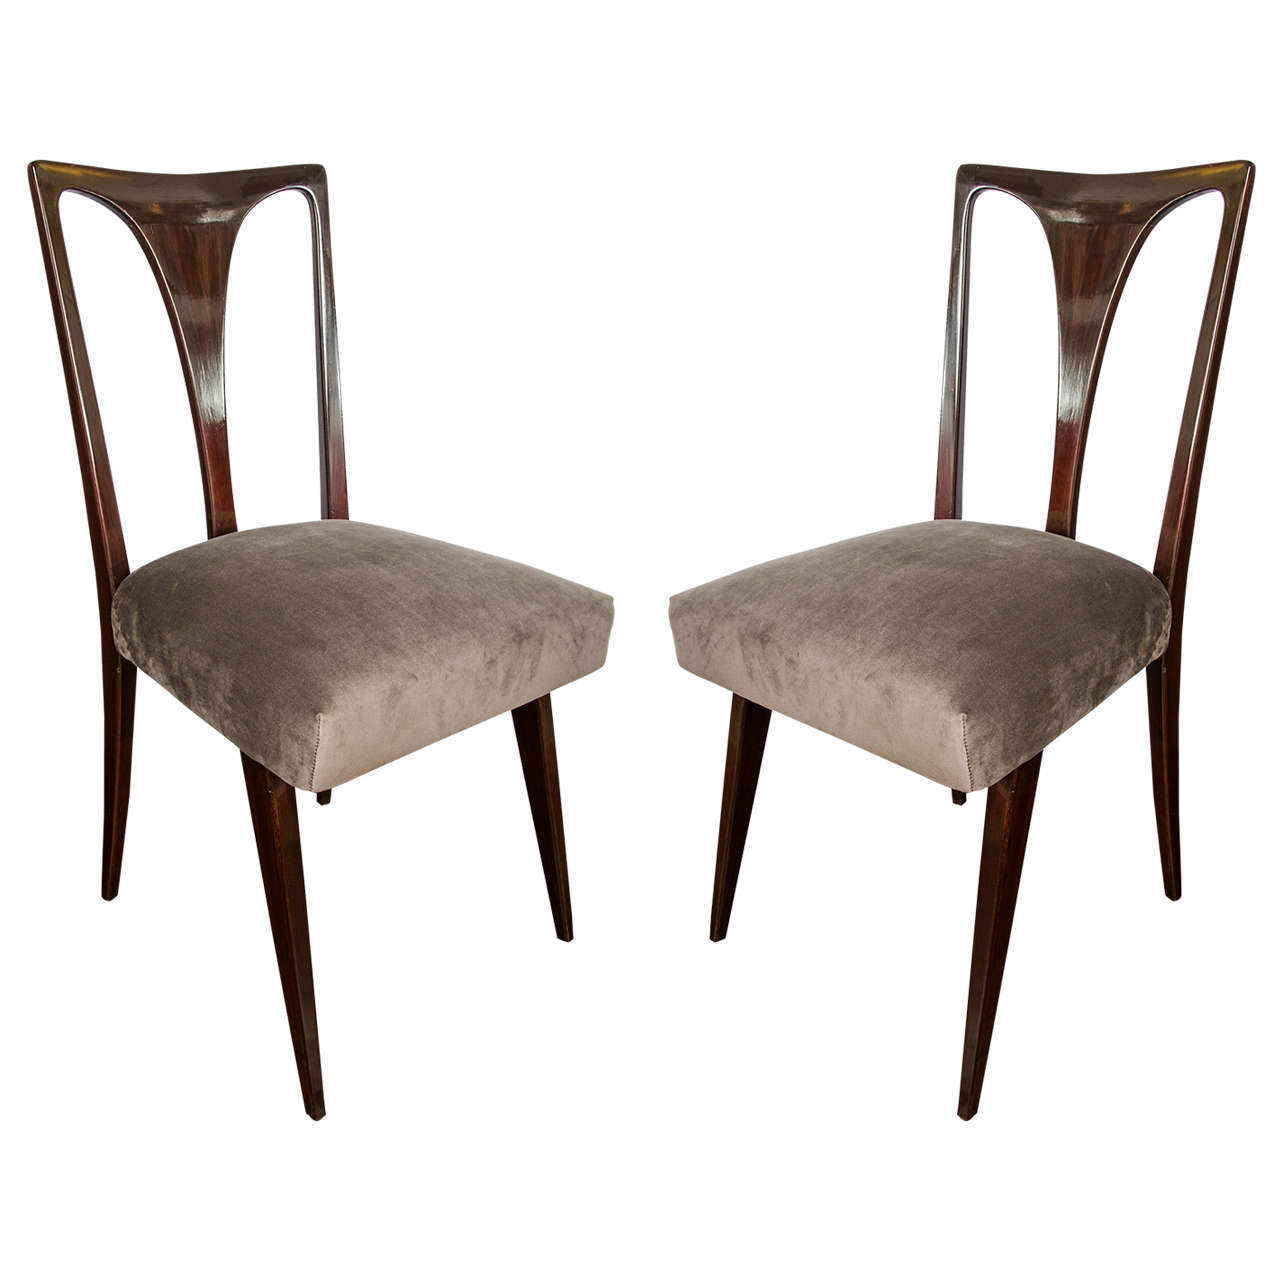 1950 set of six italian dining chairs vittorio ragone for Furniture 1950